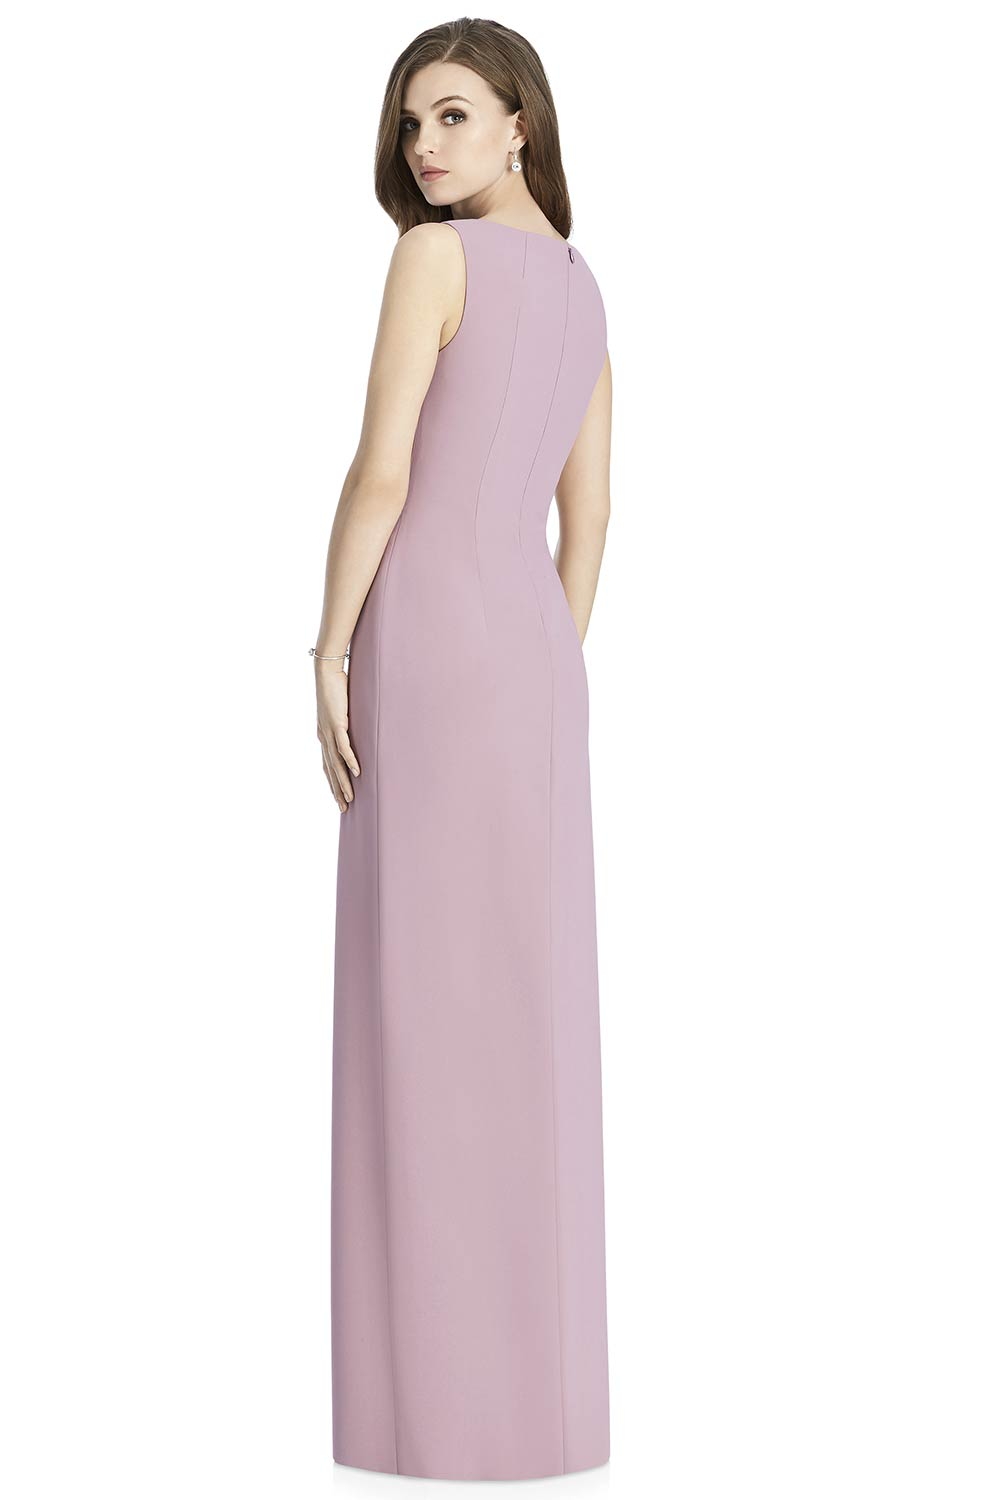 bridesmaid-dresses-dessy-26526